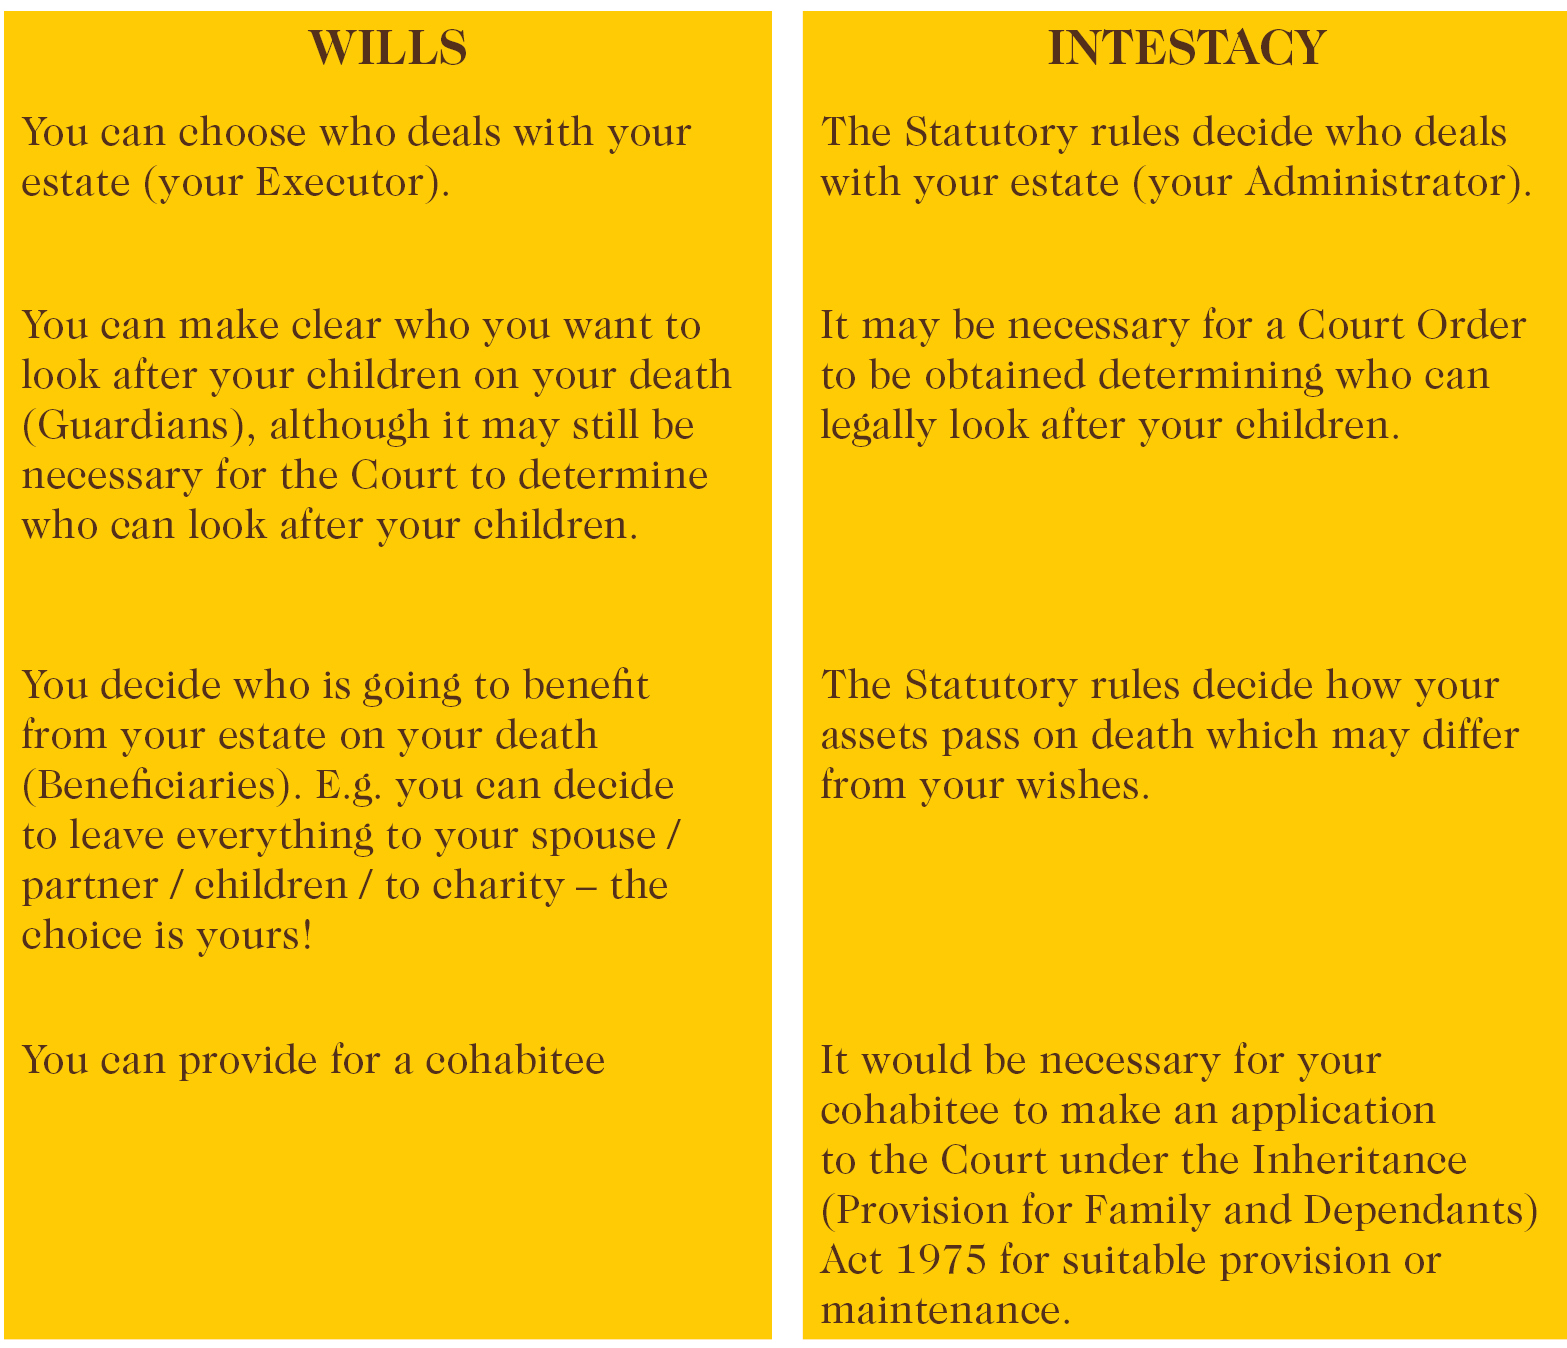 Wills v Intestacy